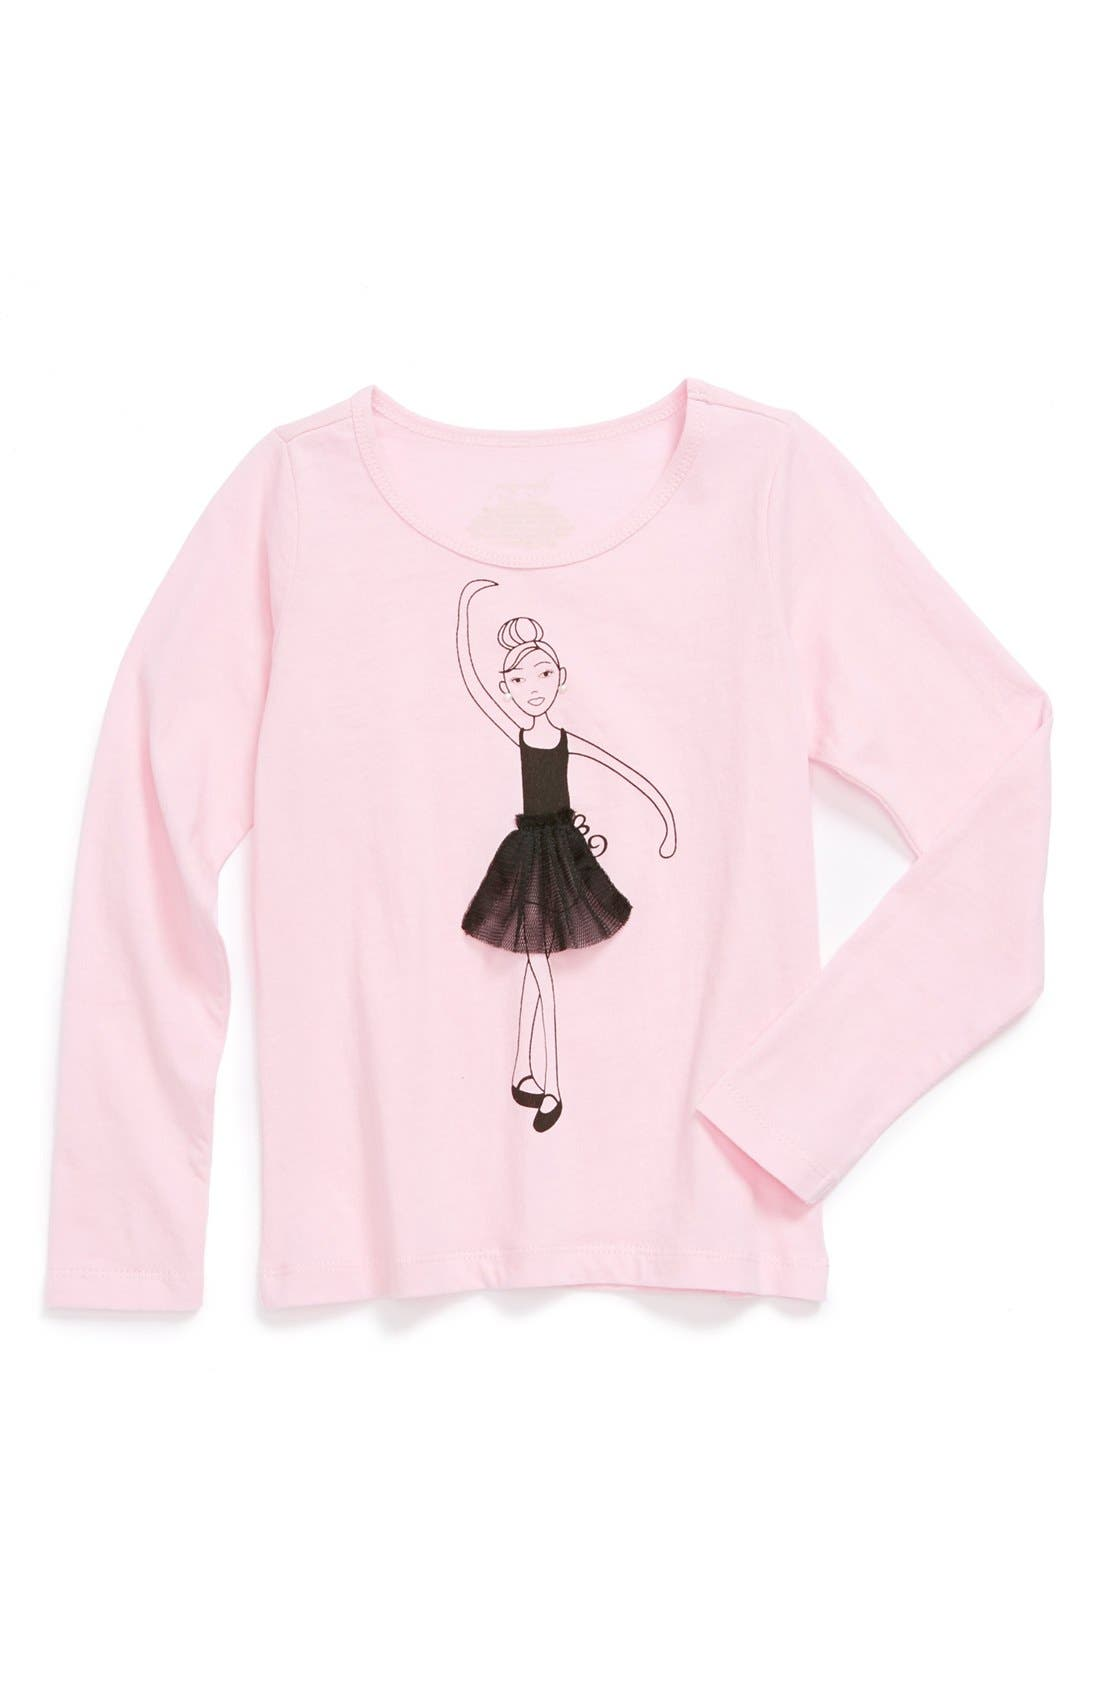 Main Image - Penny Candy Graphic Tee (Little Girls & Big Girls)